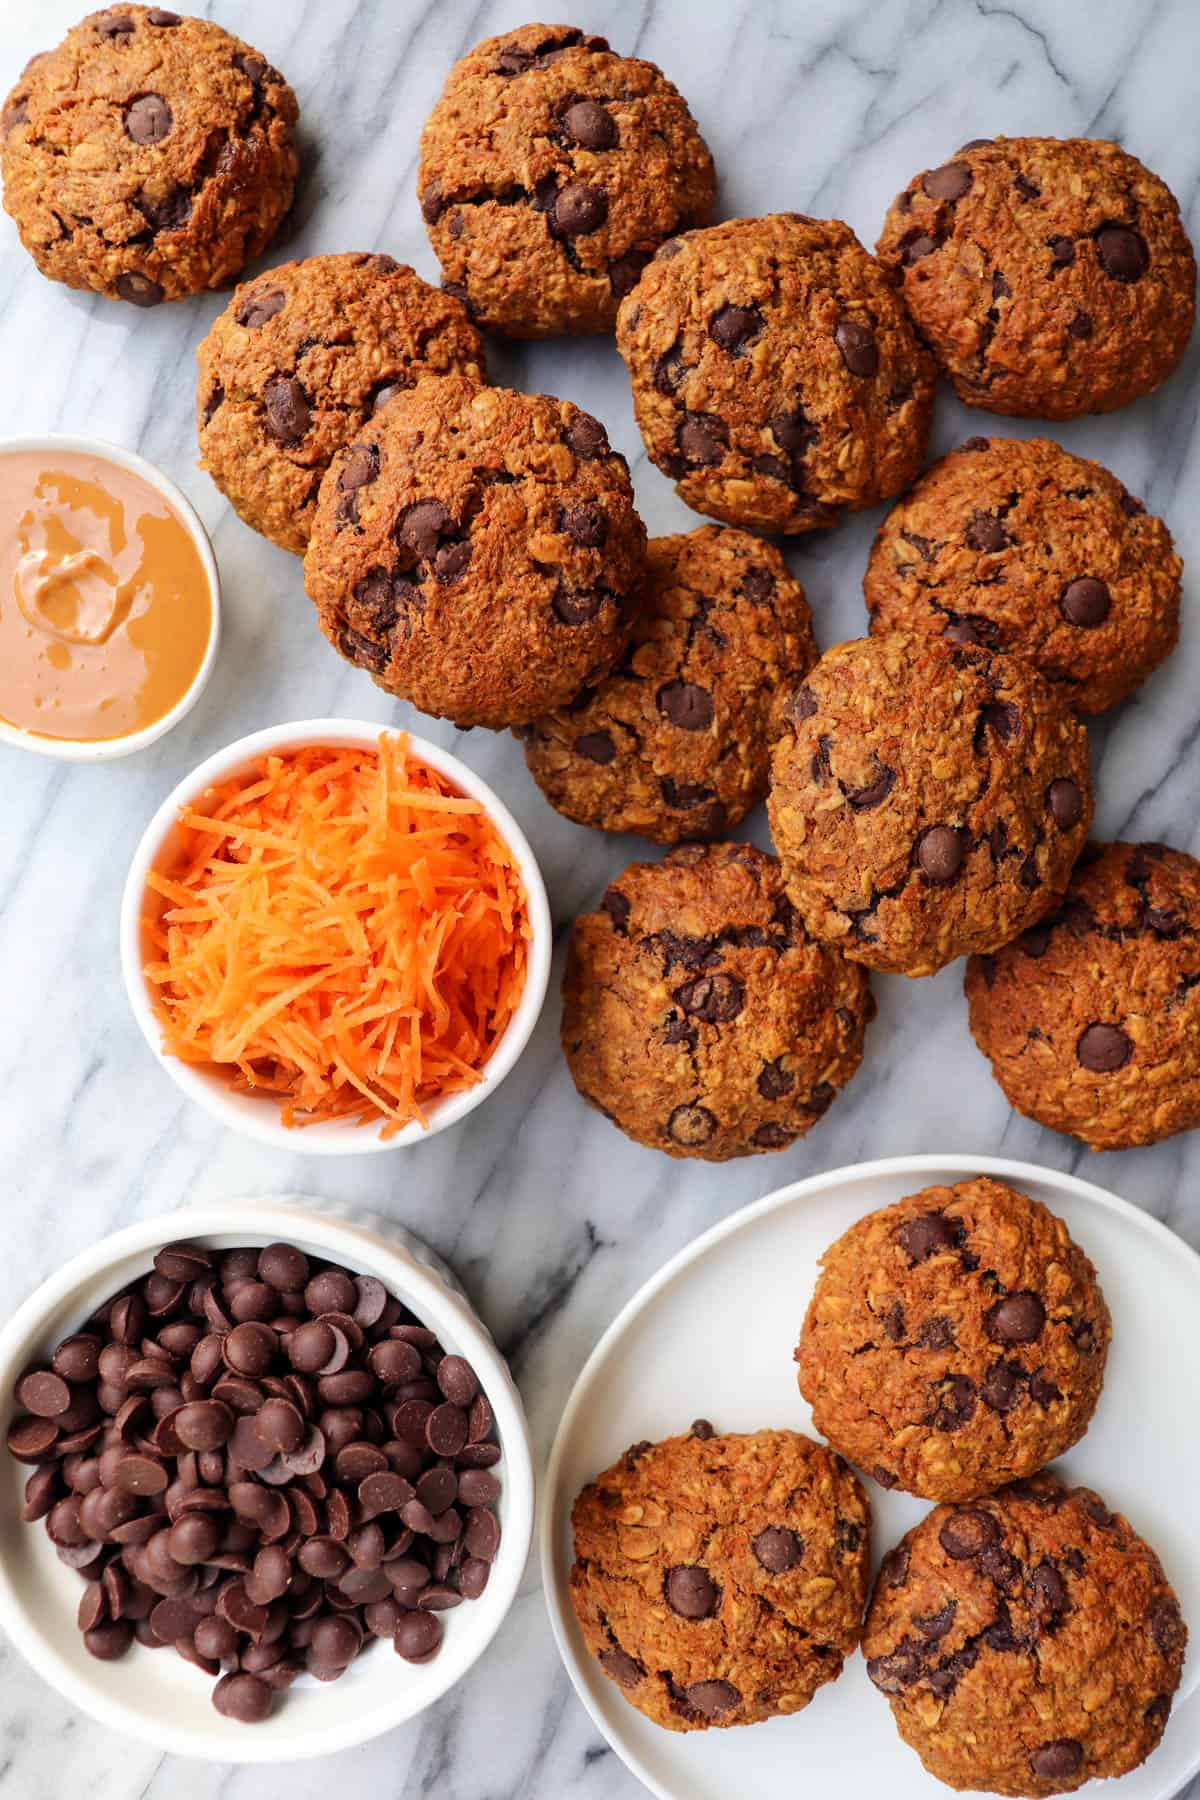 Carrot cookies on marble slab with mini bowls of grated carrot, chocolate chips and peanut butter on the side for decoration.